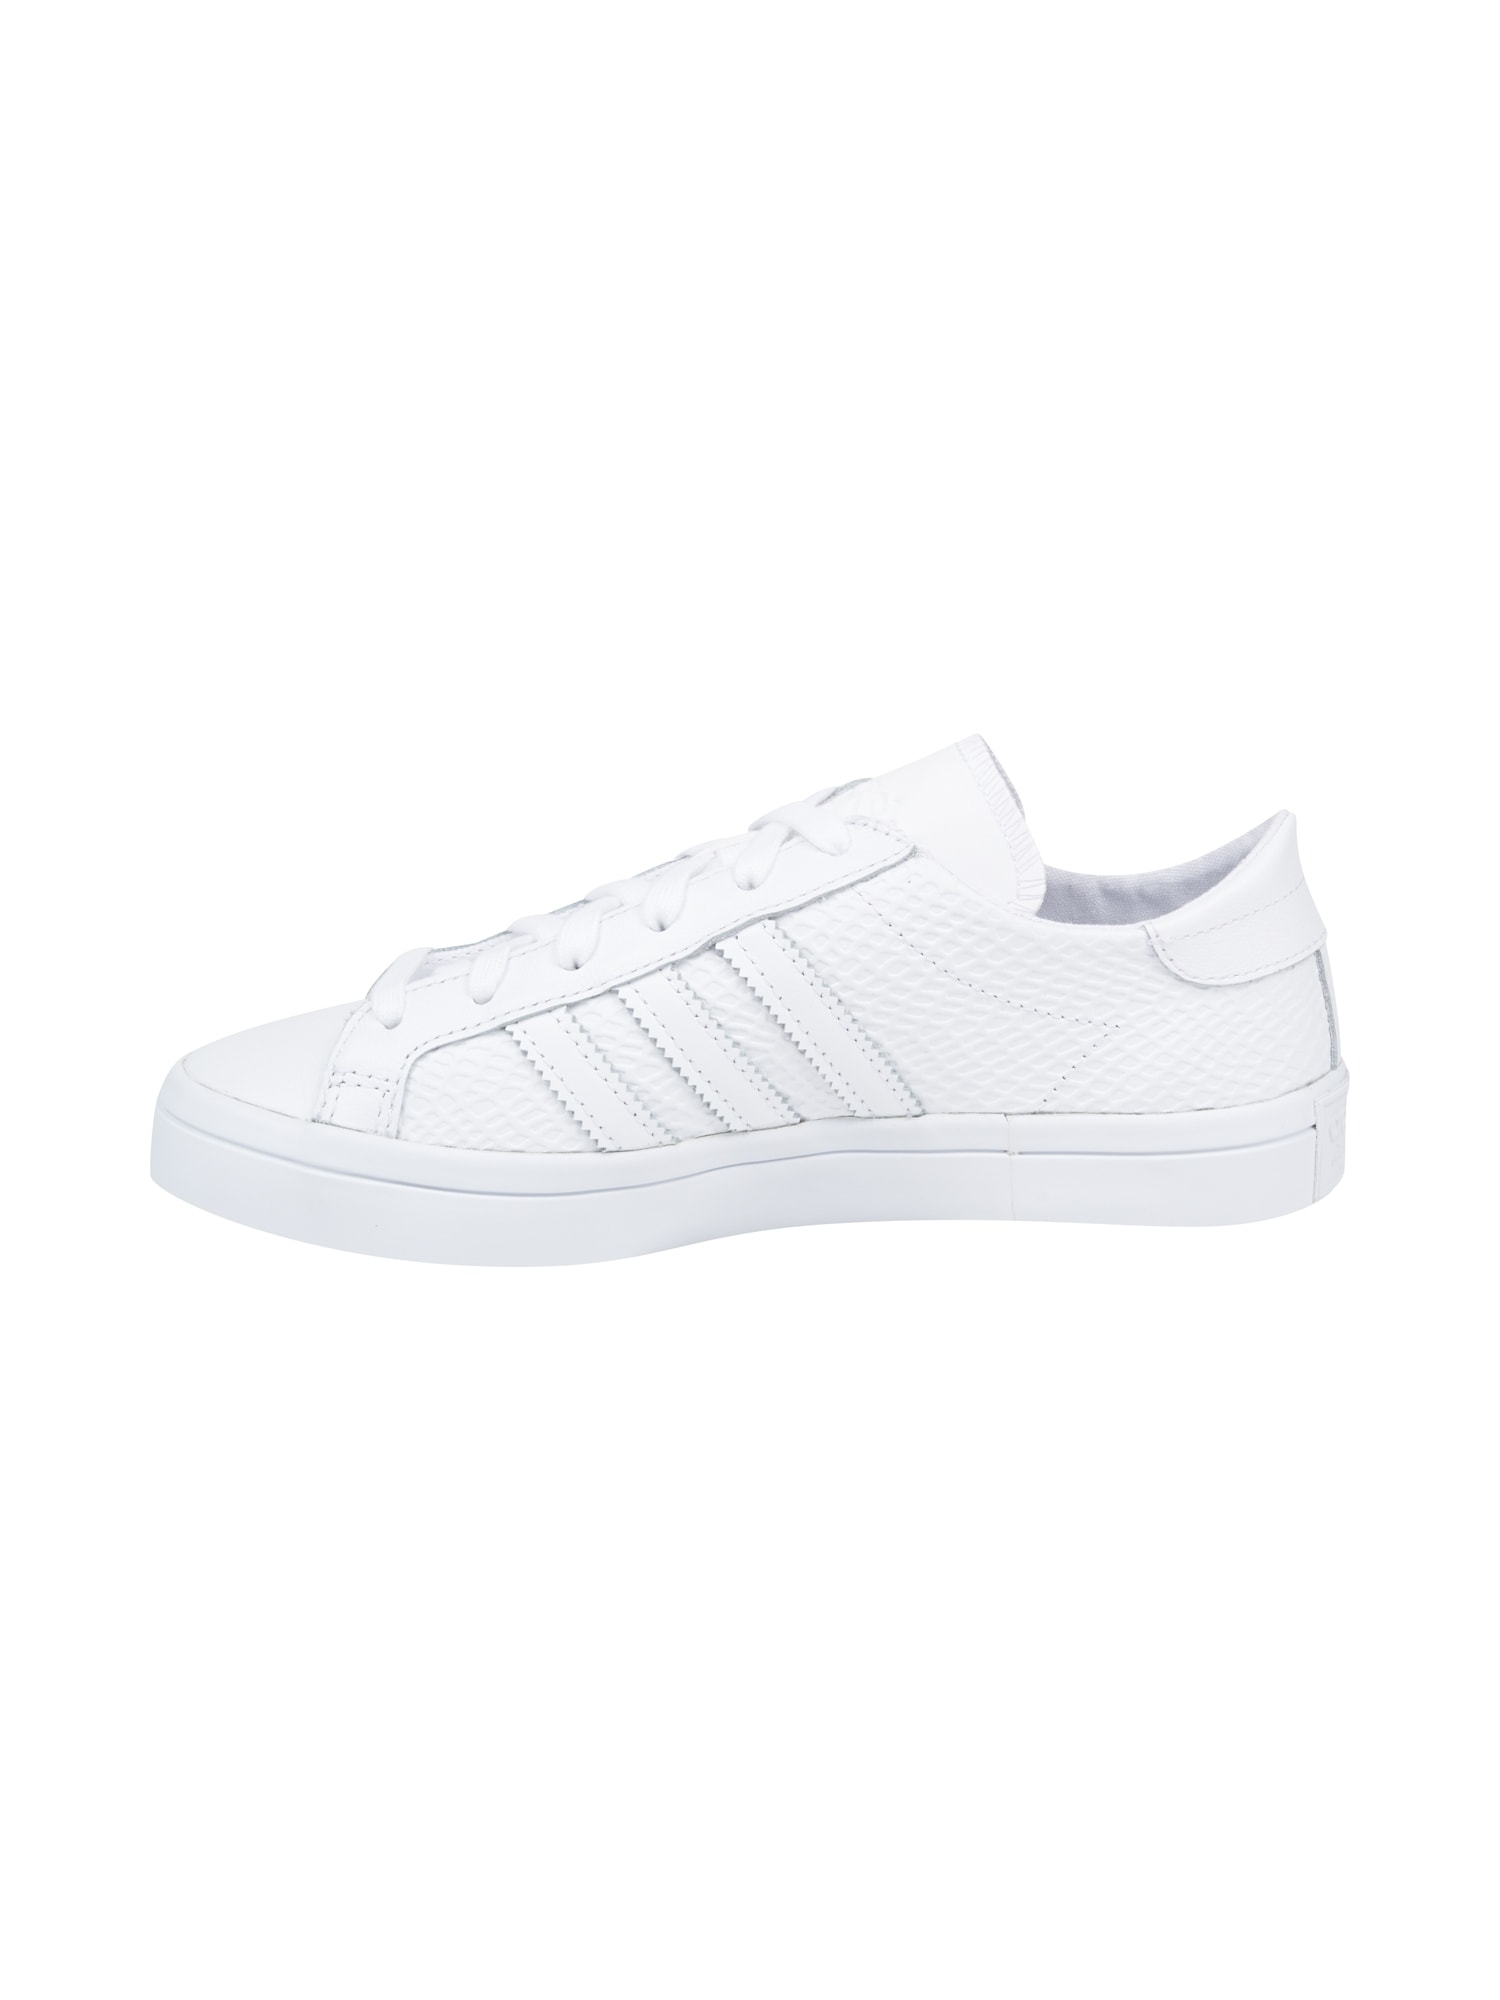 preview of store official site Adidas Damen Schuhe Sale - Adidas Bestseller | Modisch ...